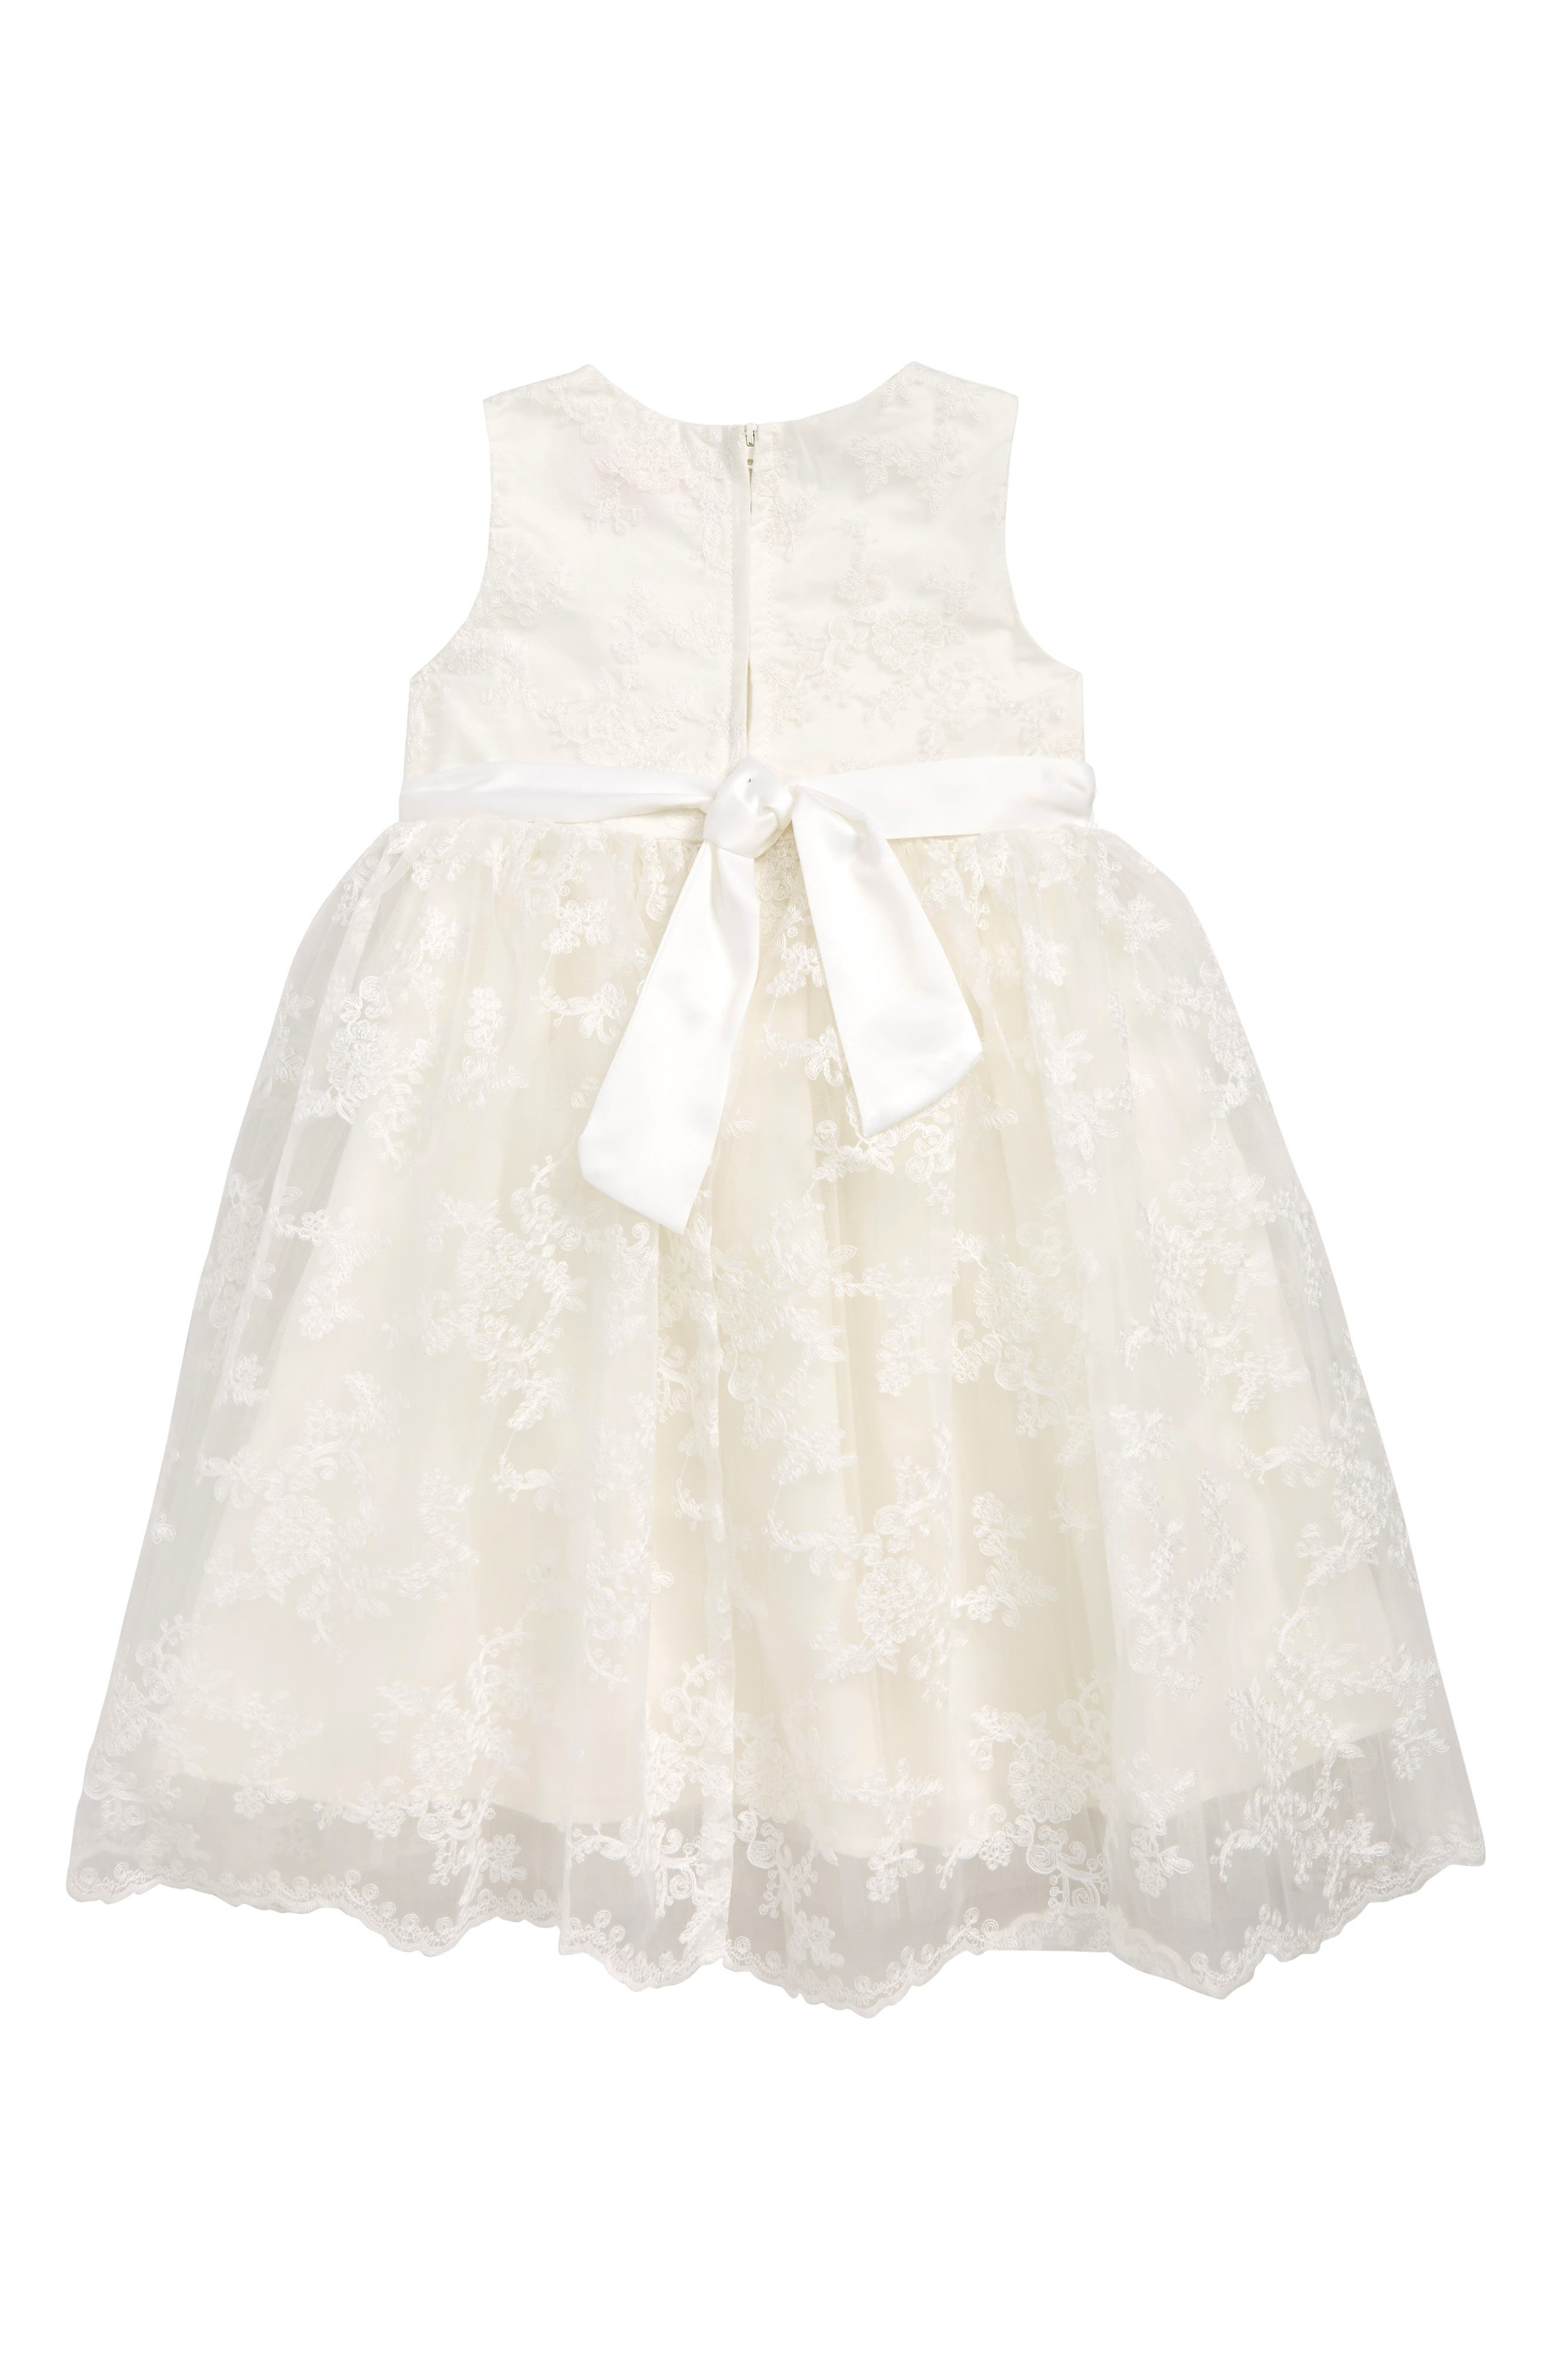 POPATU, Embroidered Dress, Main thumbnail 1, color, WHITE